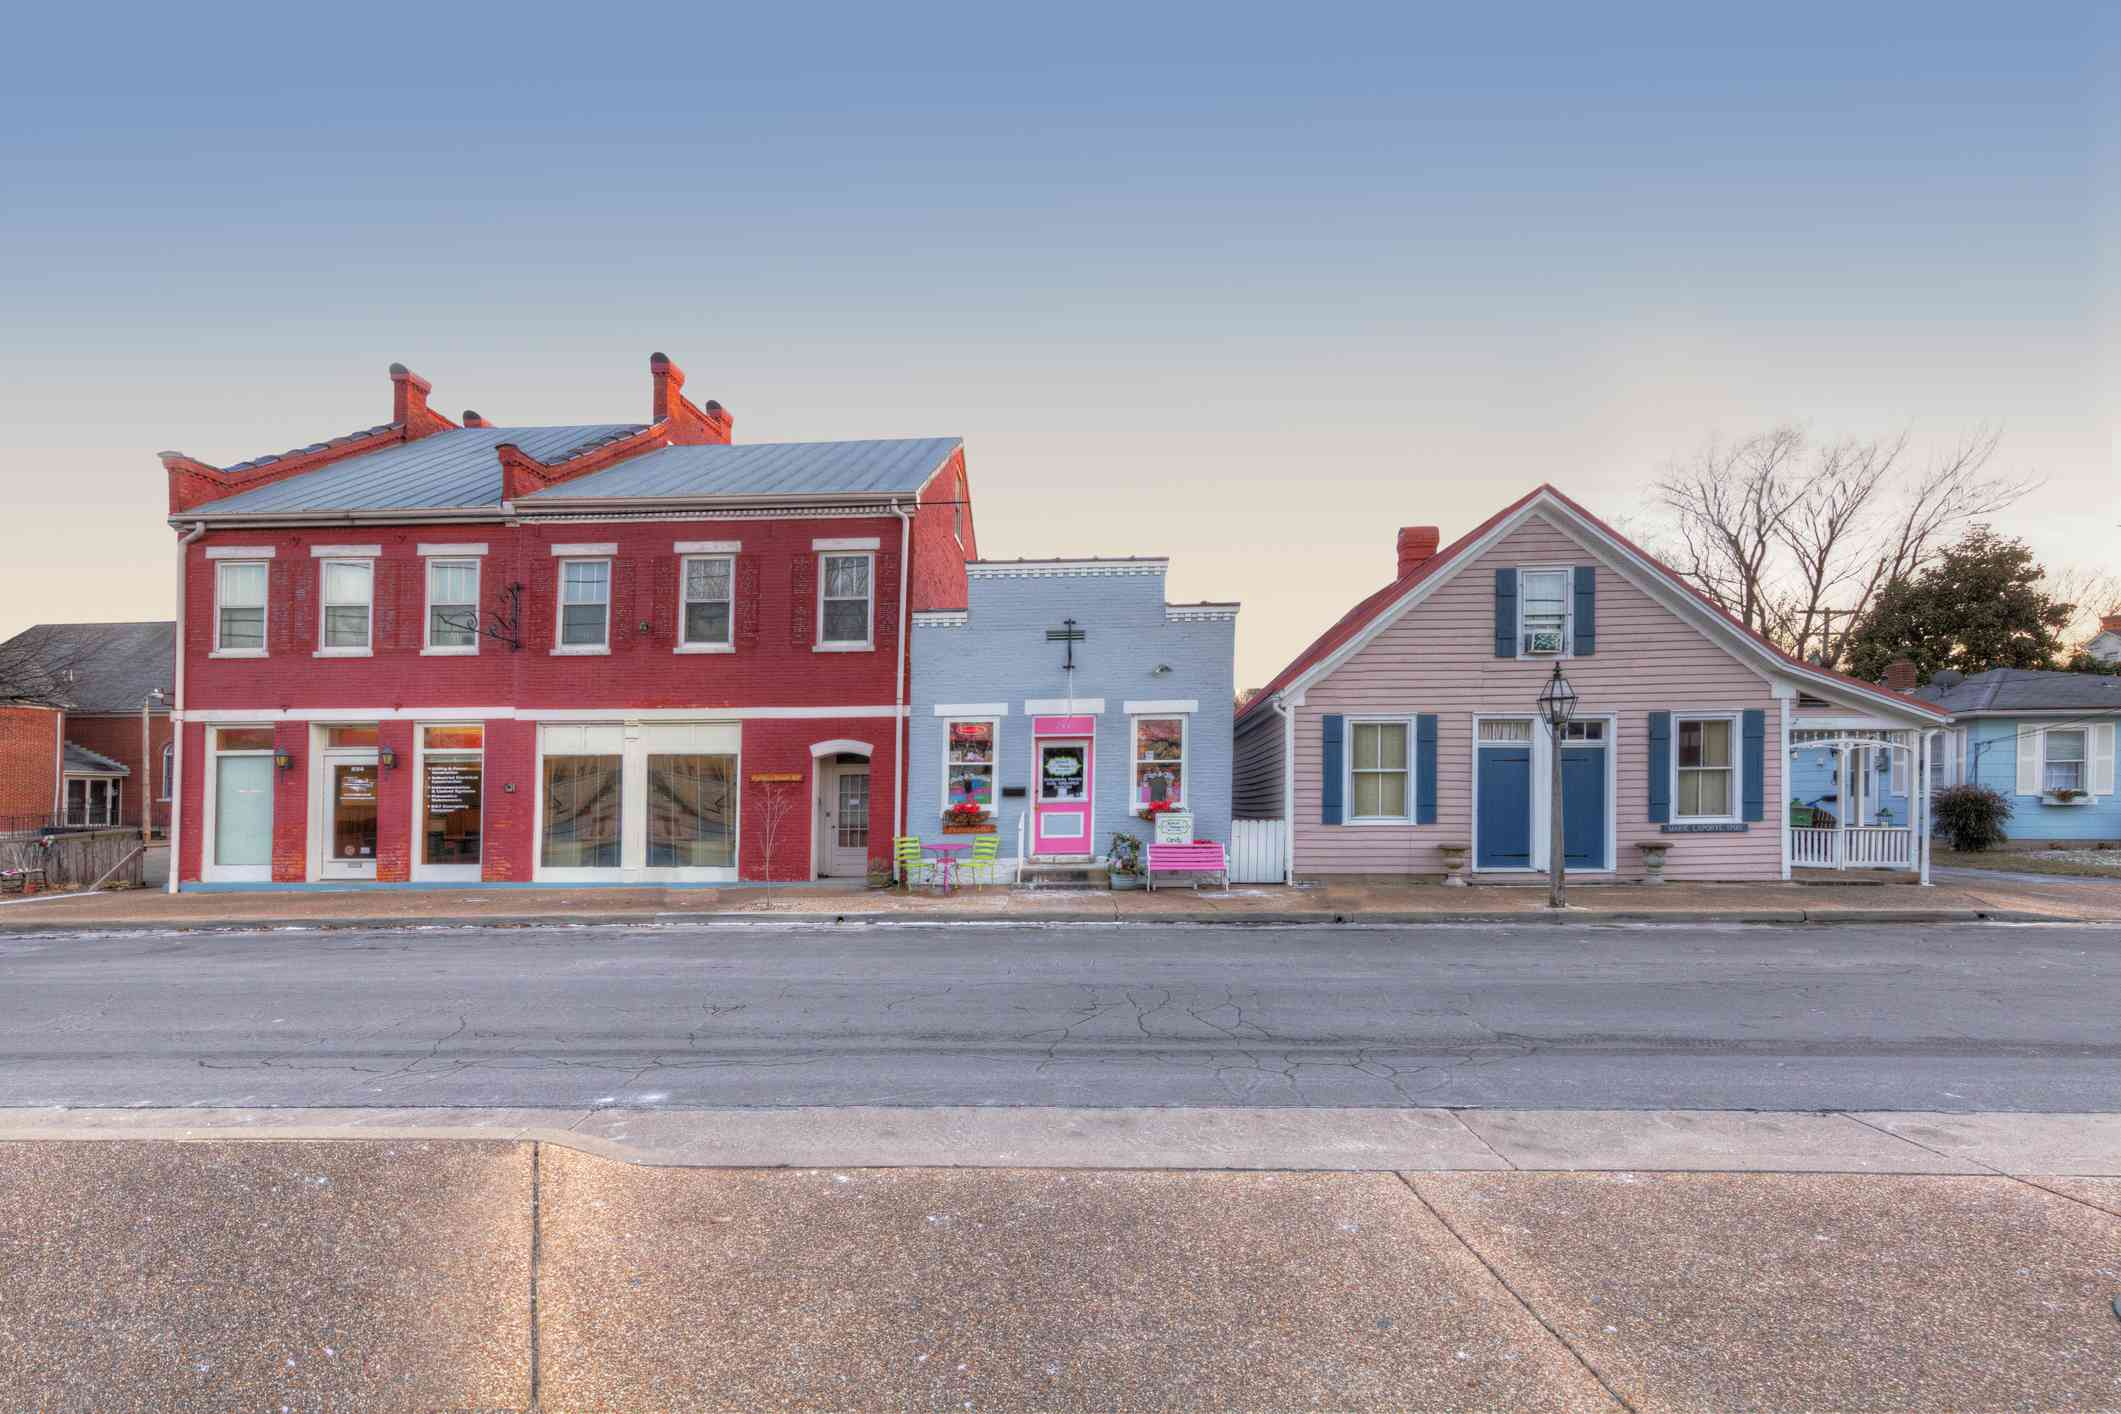 A cluster of three colorful old buildings on photographed from across an empty street